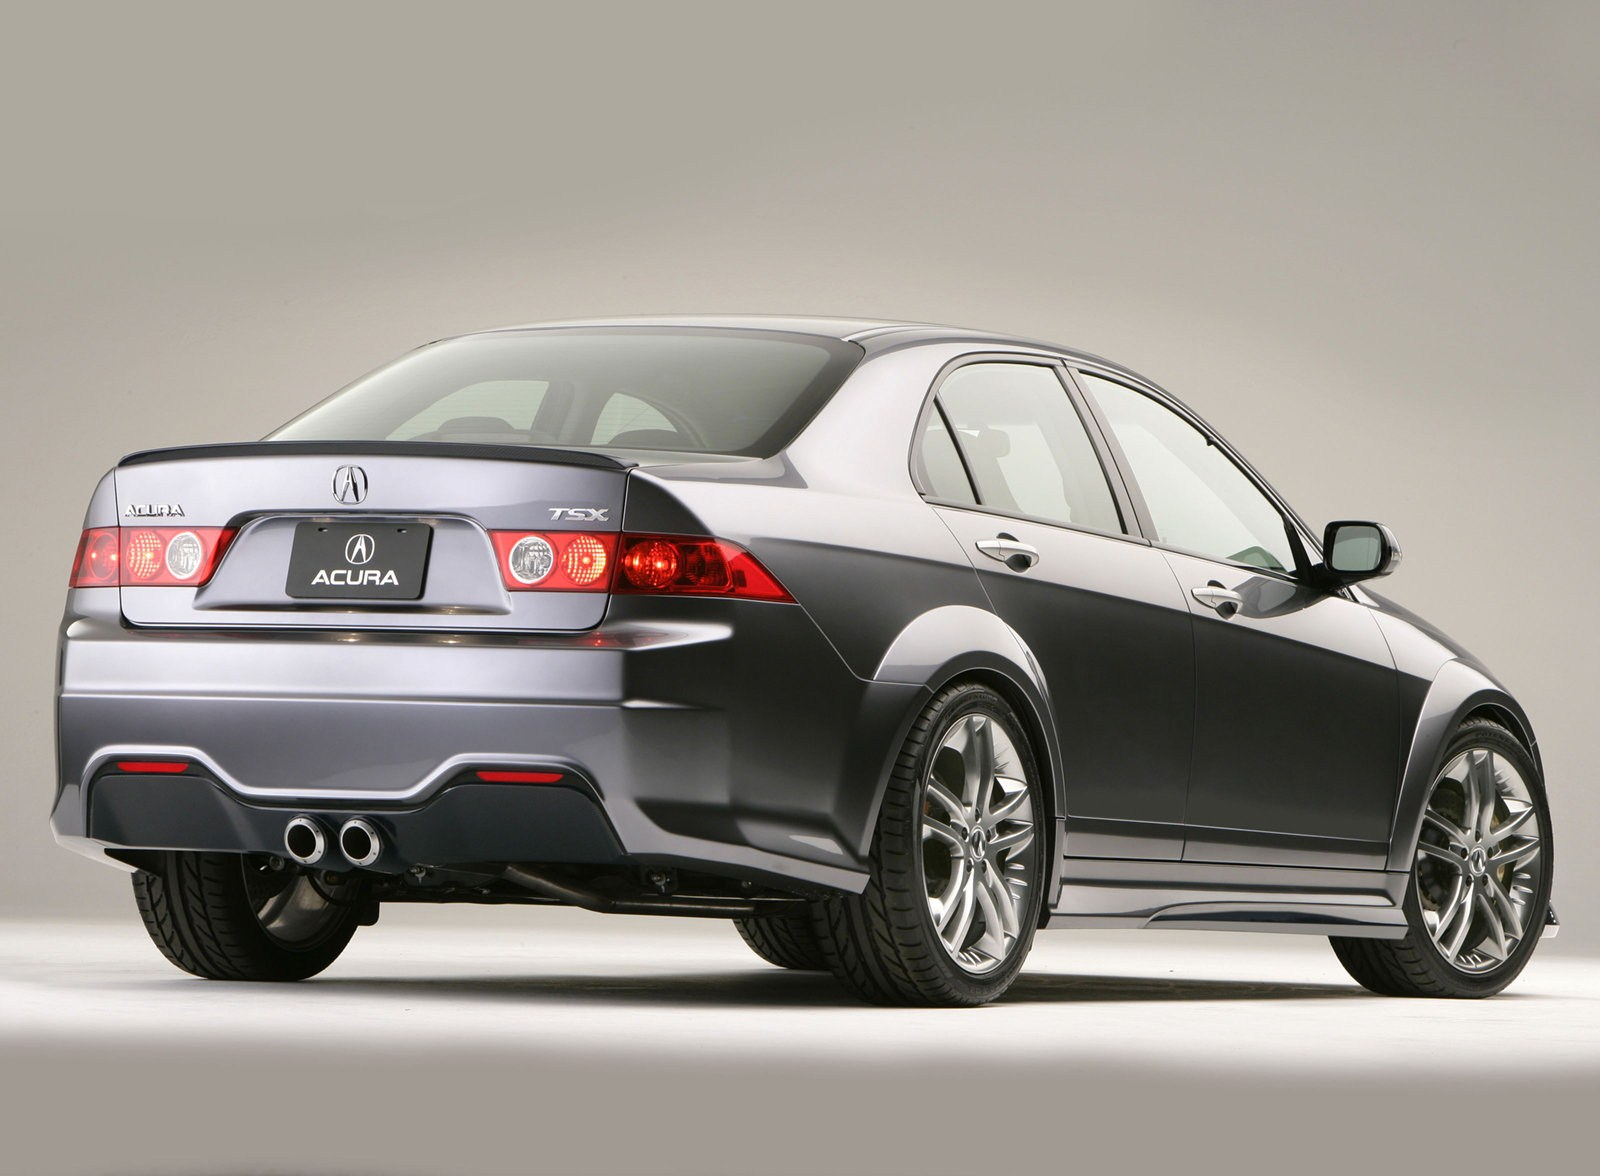 1600x1176 - Acura TSX Wallpapers 20